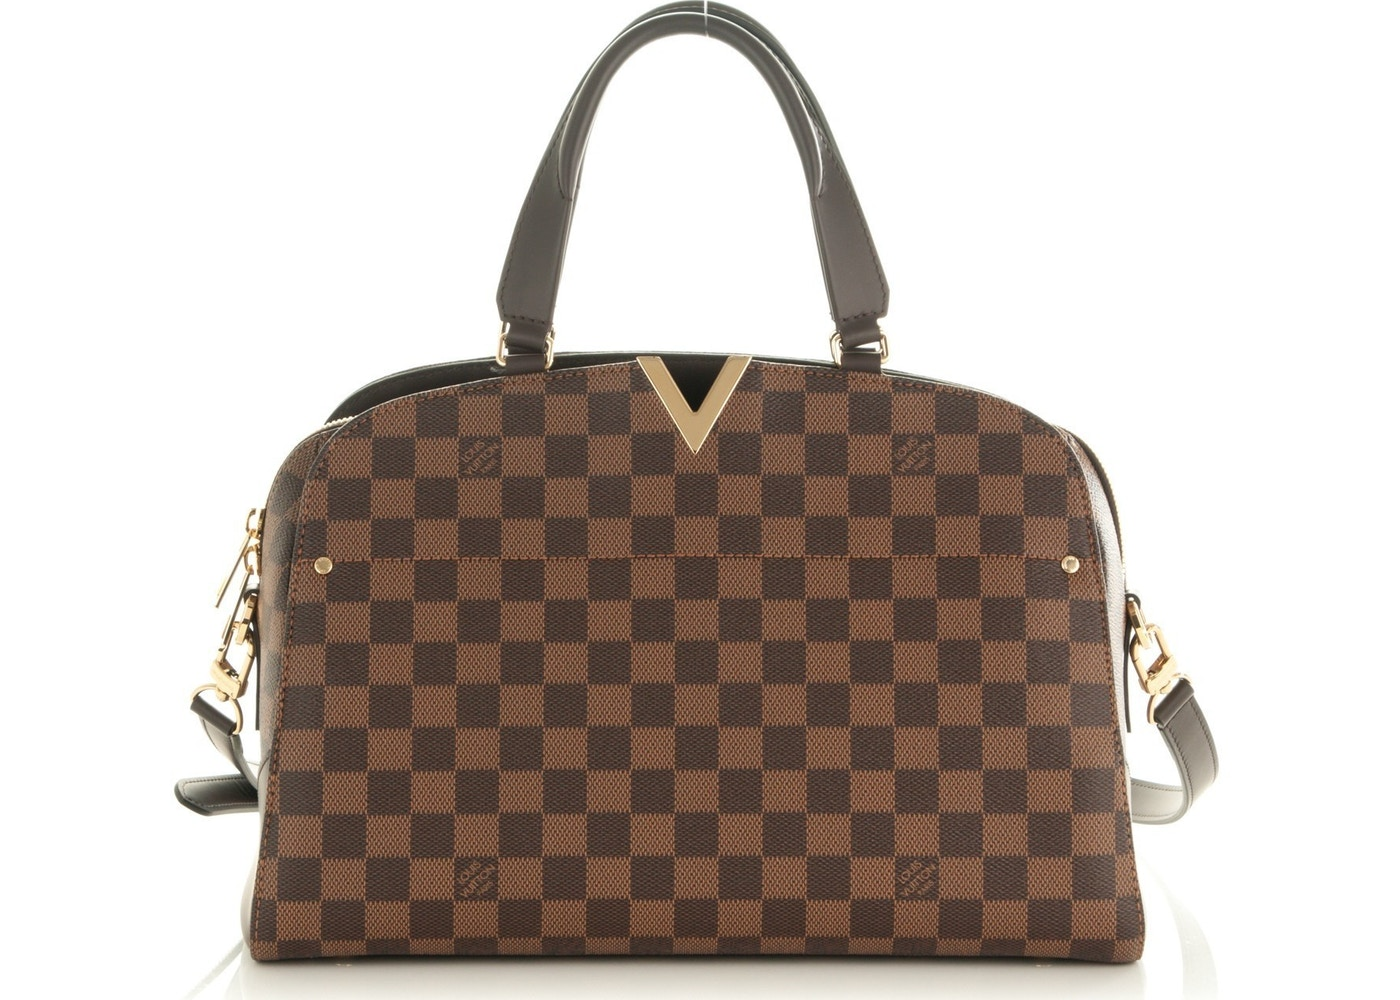 c1565e09255e Louis Vuitton Kensington Bowling Bag Damier Ebene PM Brown. Damier Ebene PM  Brown